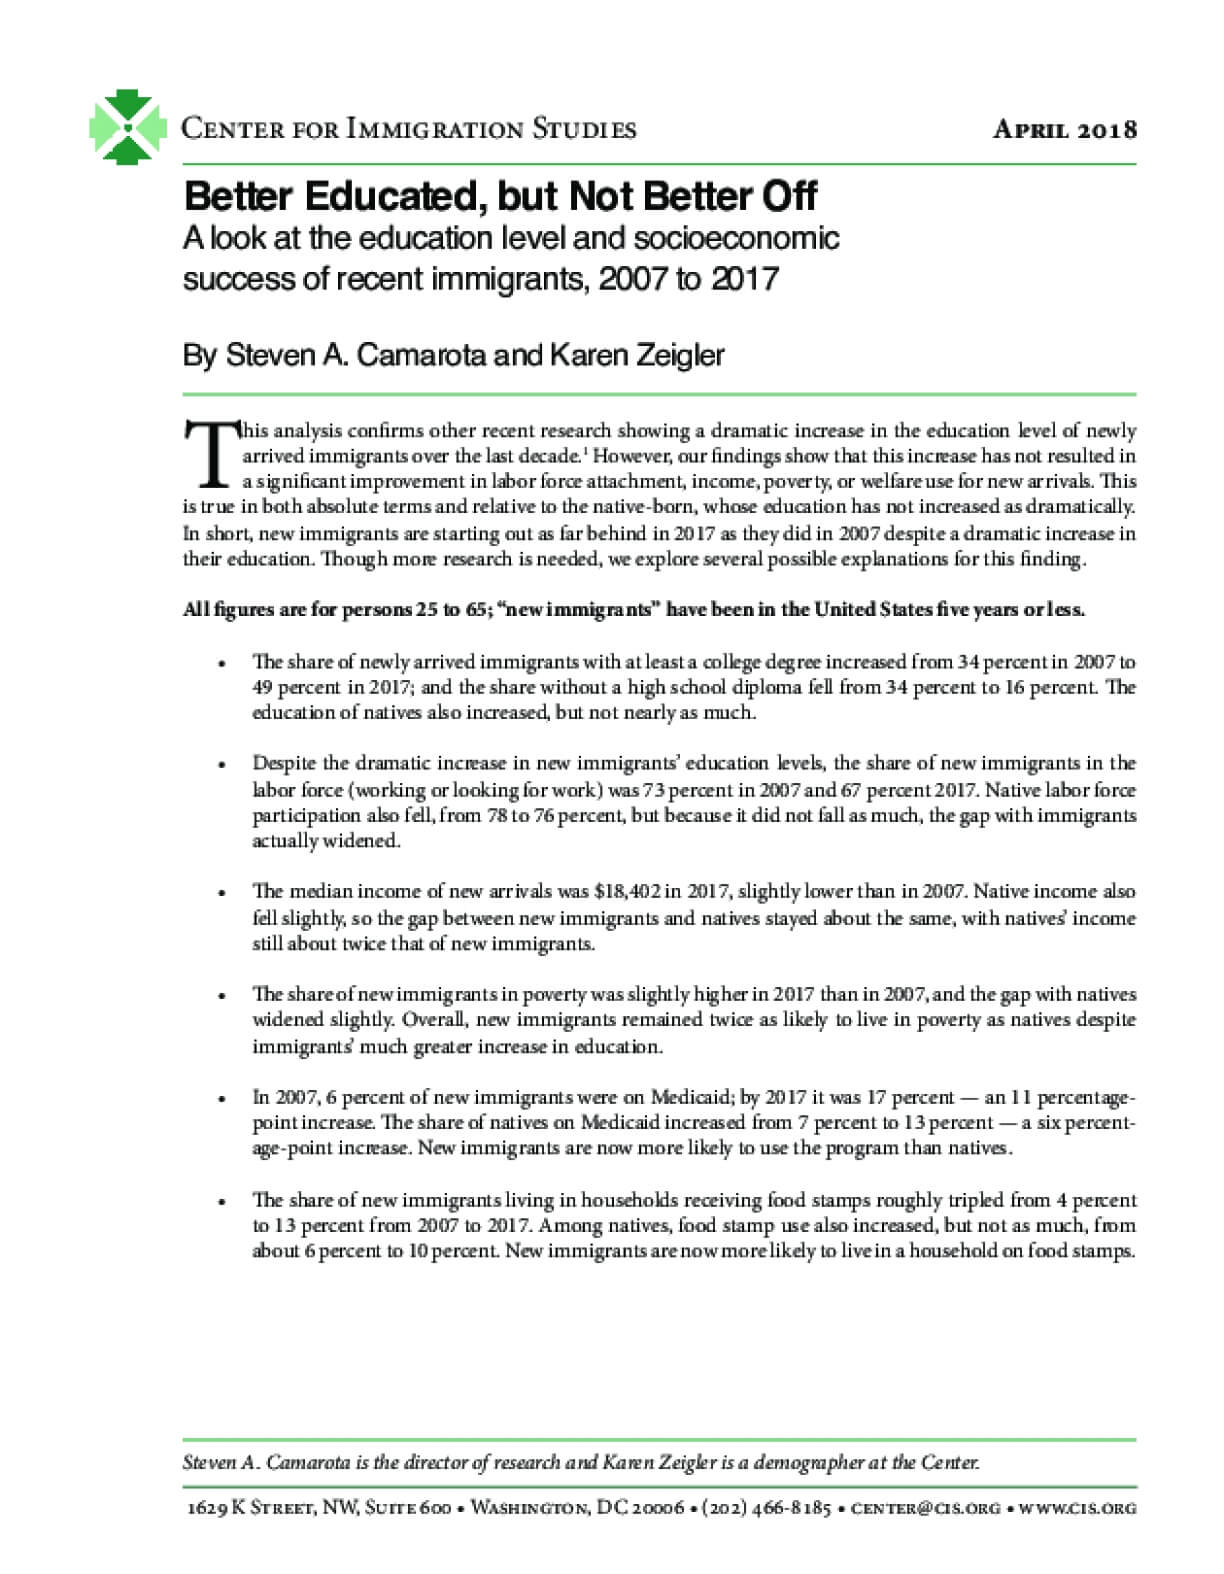 Better Educated, but Not Better Off: A Look at the Education Level and Socioeconomic Success of Recent Immigrants, 2007 to 2017